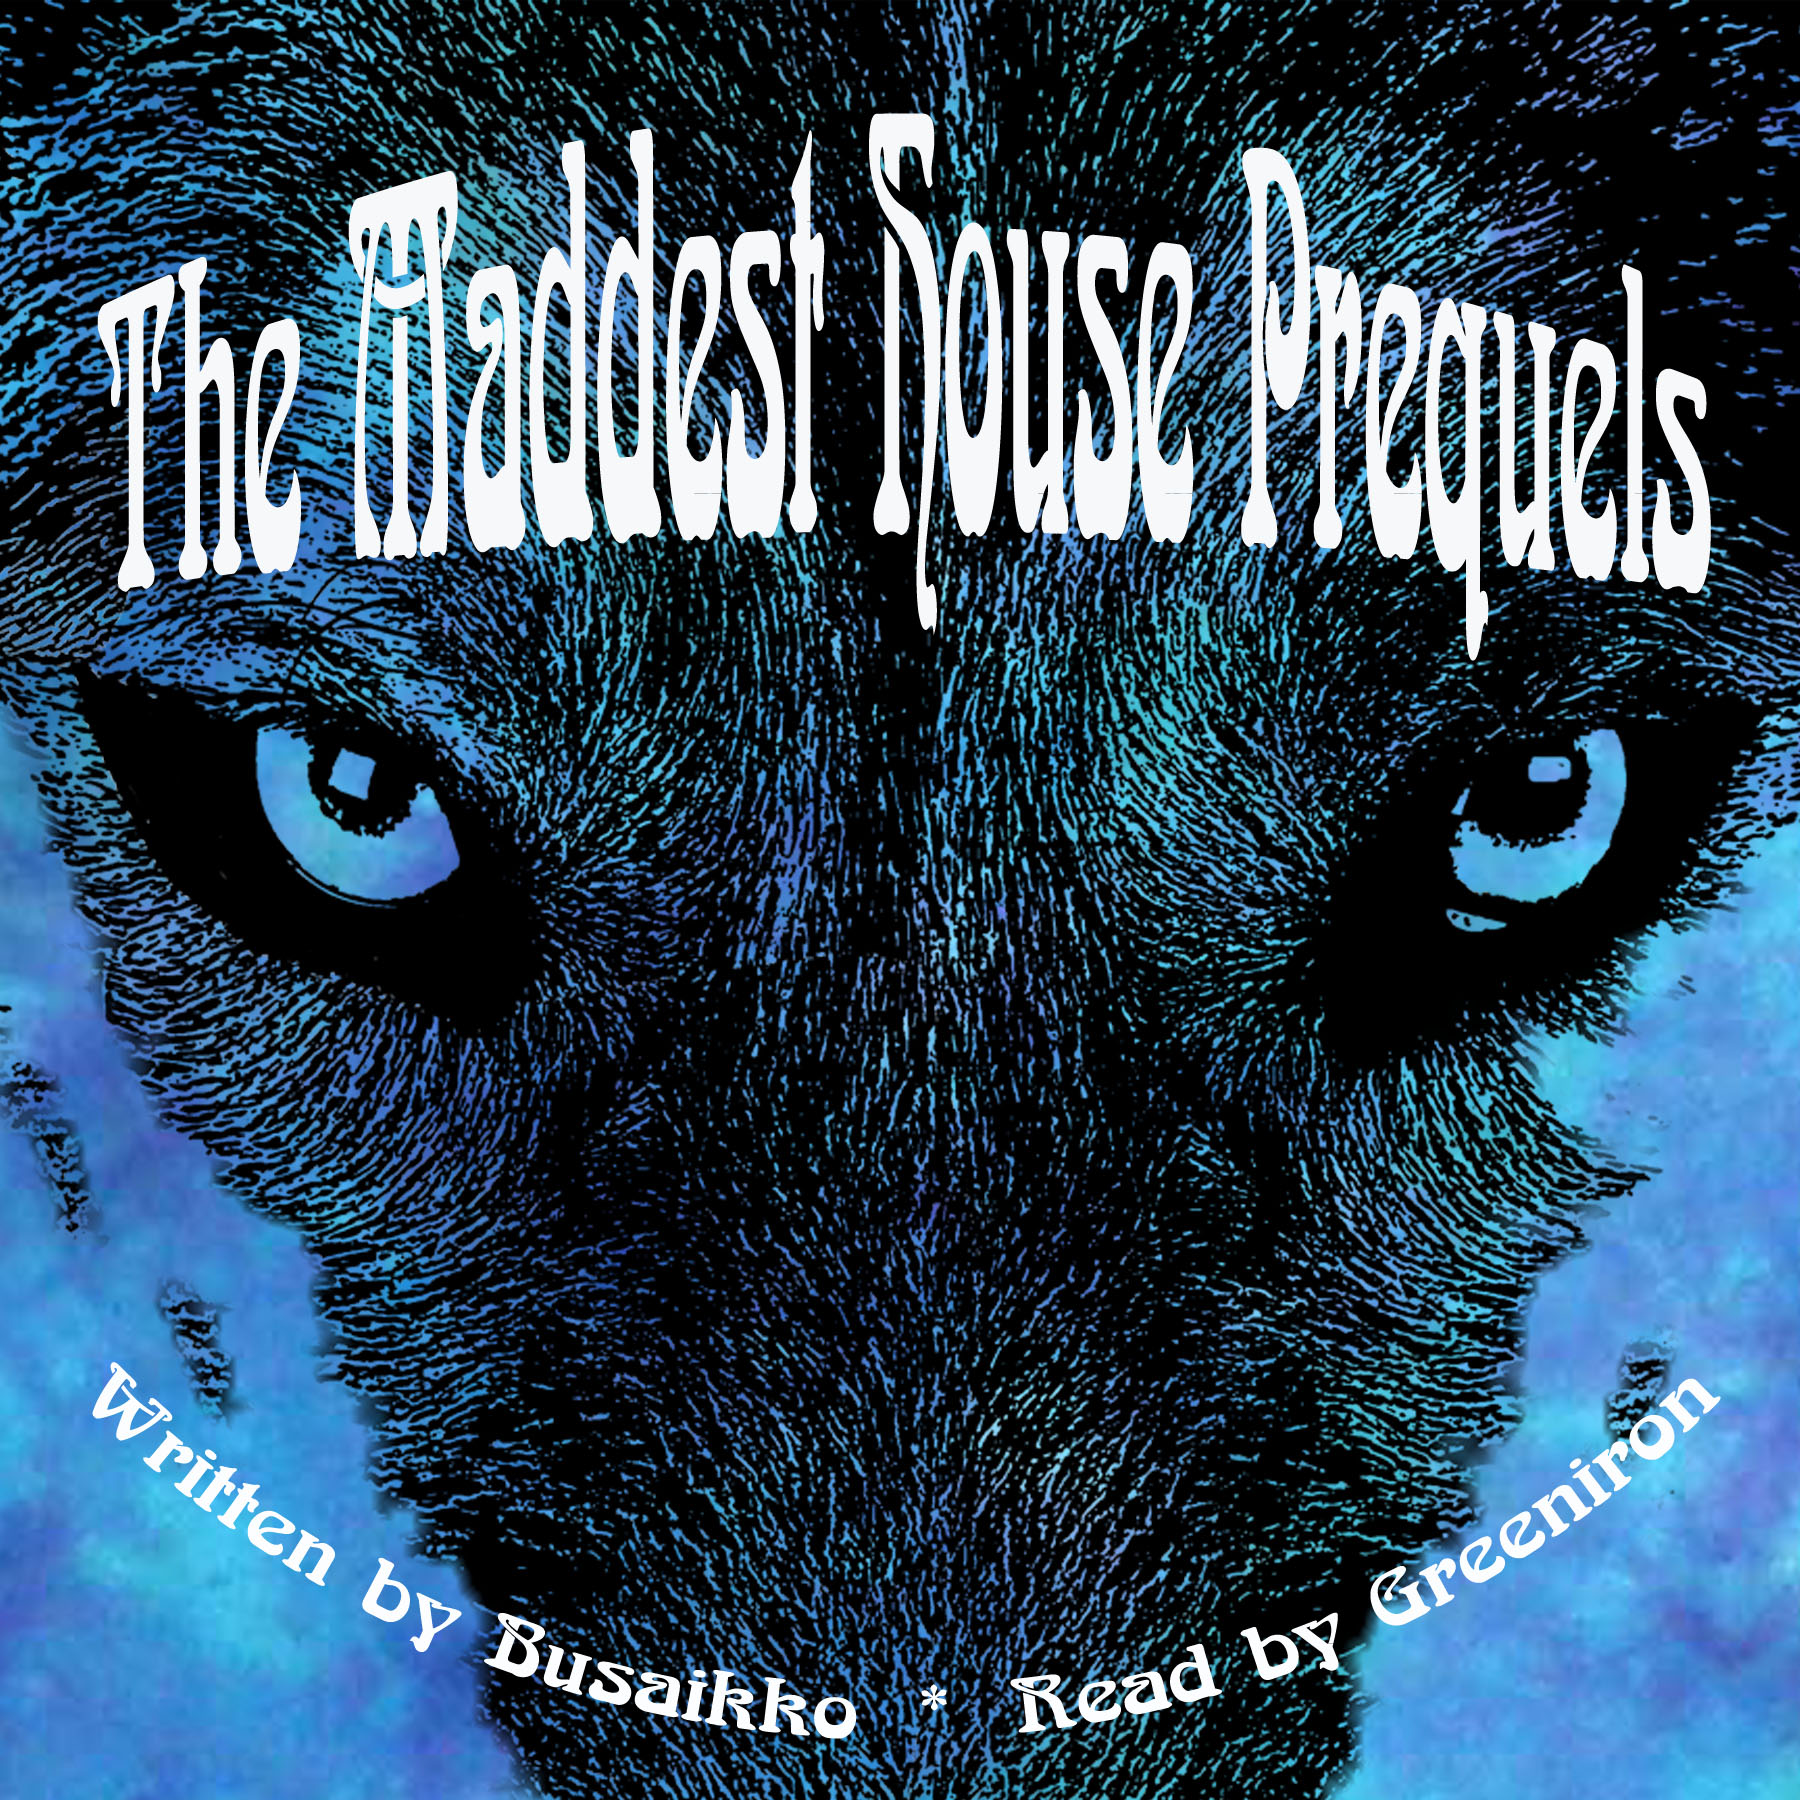 Maddest House Prequels Cover